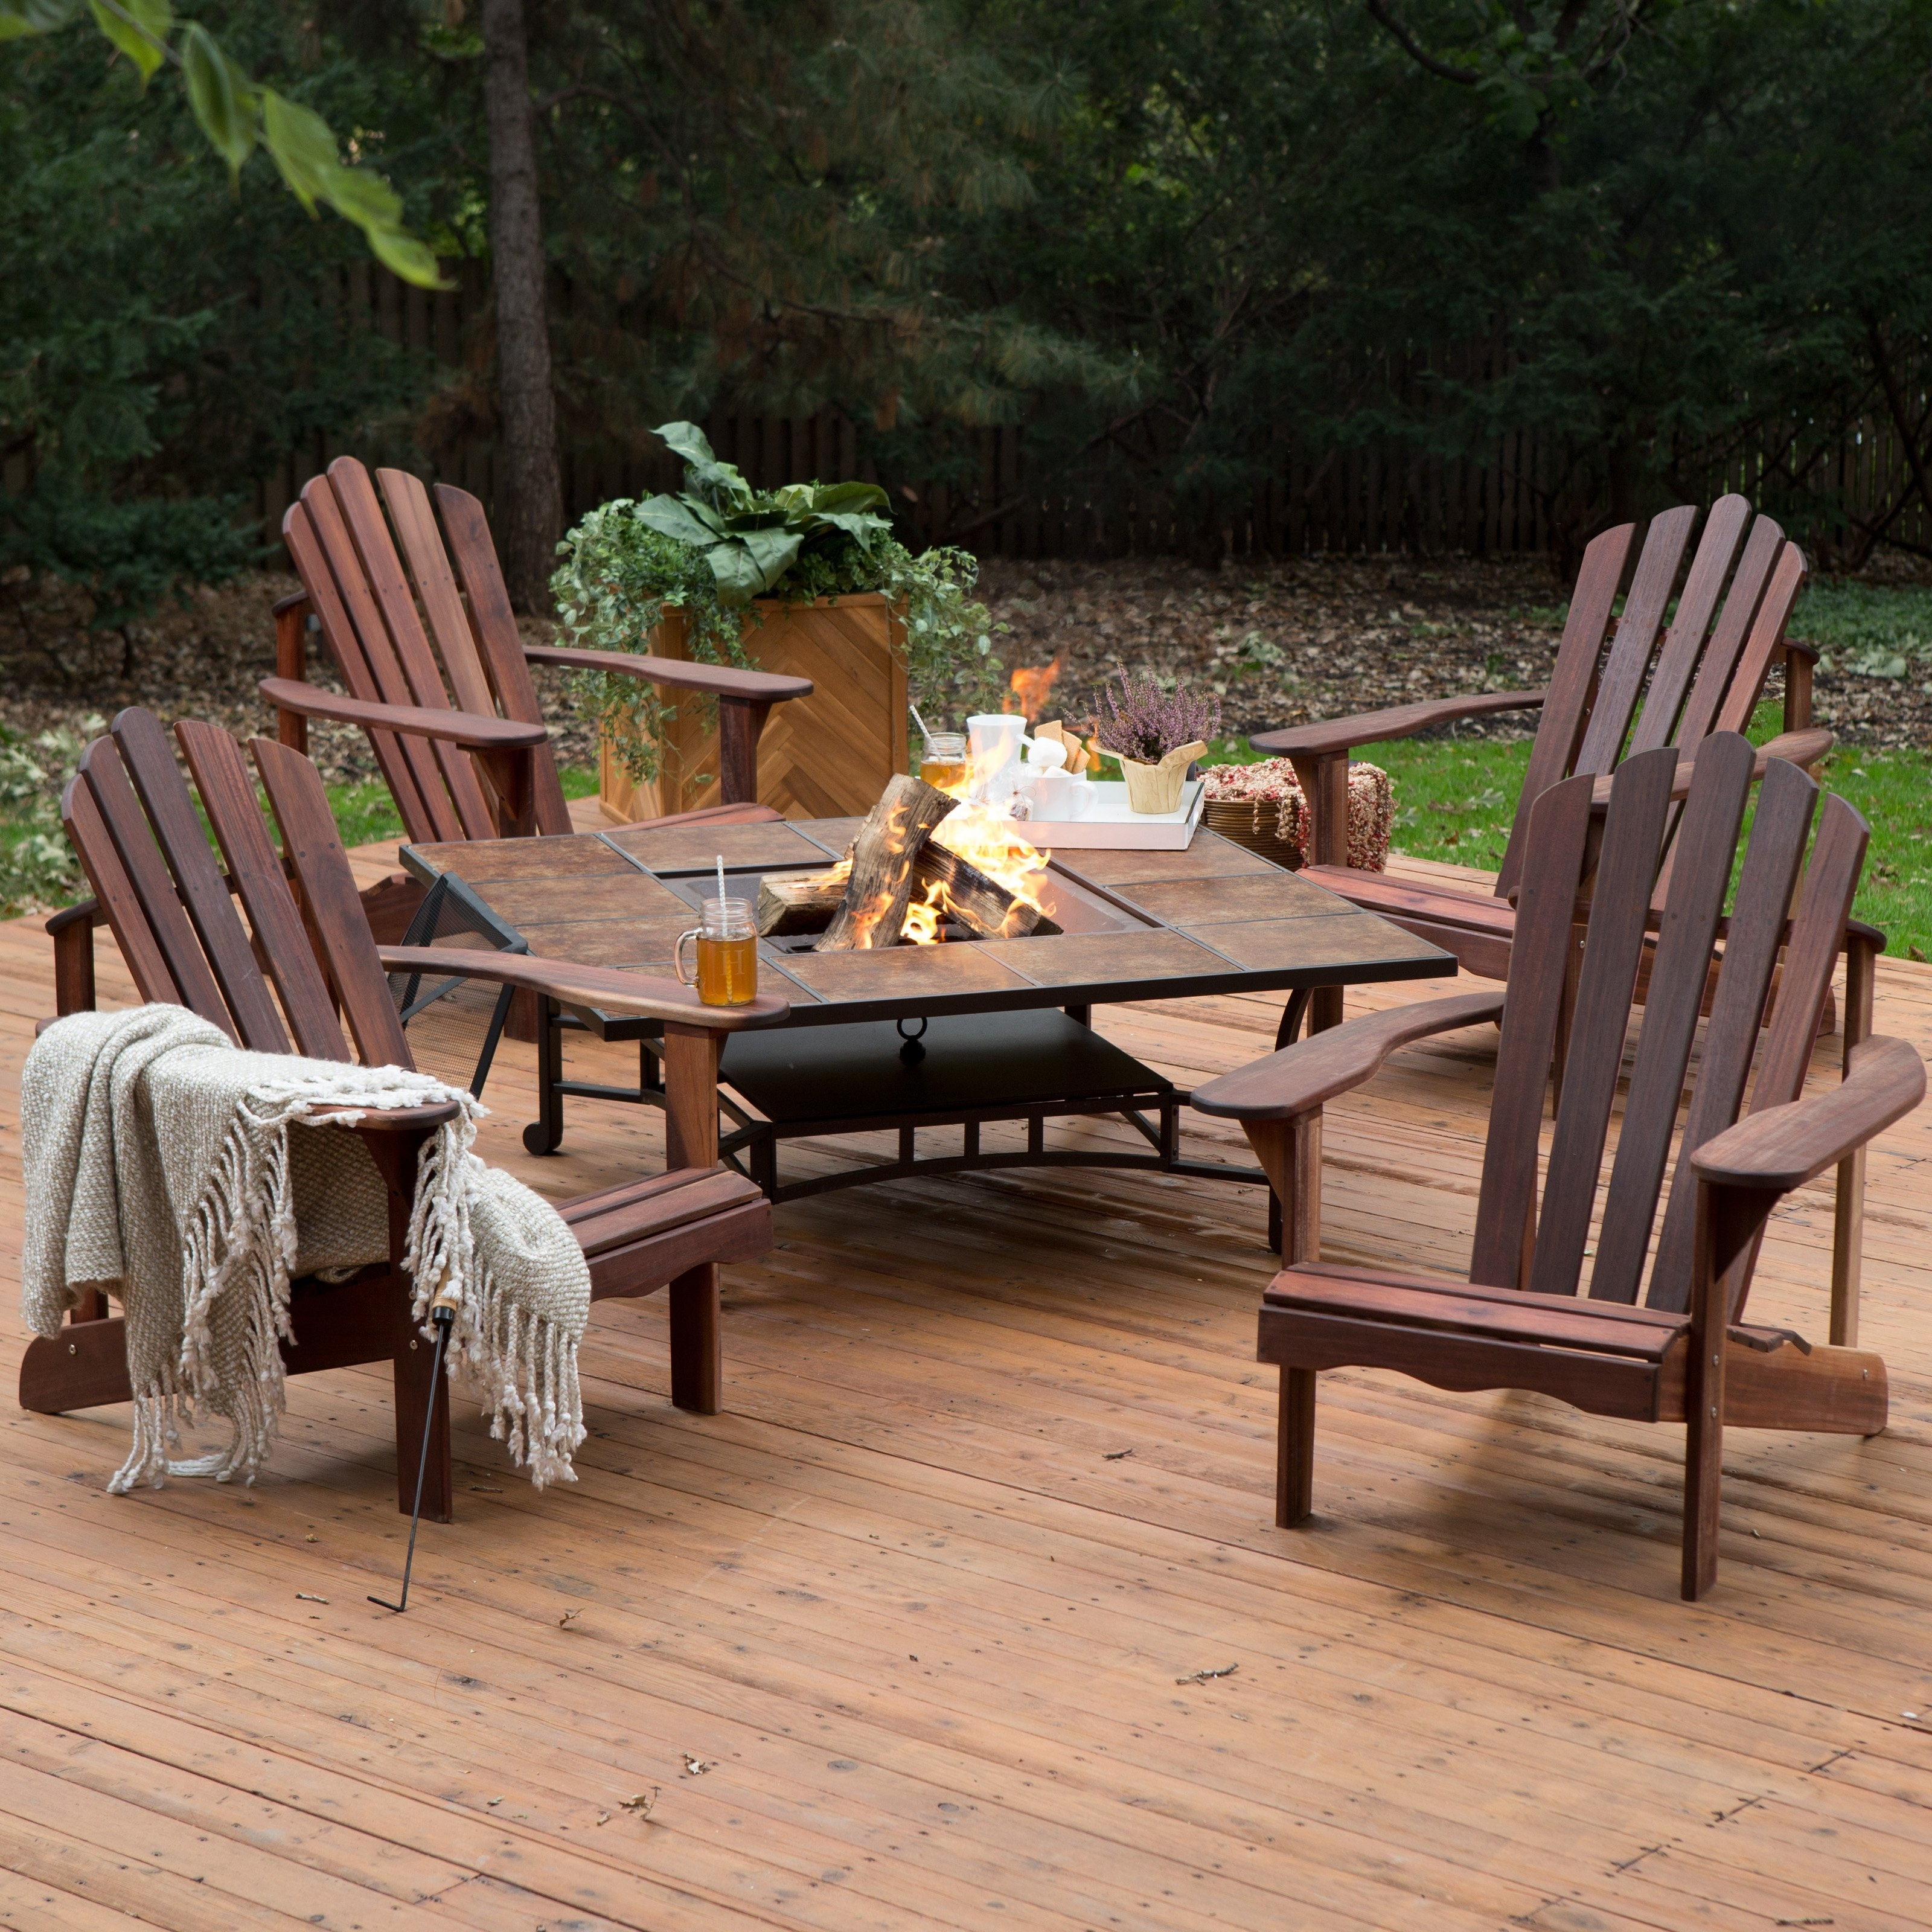 Famous Patio Conversation Sets With Propane Fire Pit Inside Patio : Patio Sets With Fire Pit Table Fresh Outdoor Patio Set With (View 19 of 20)